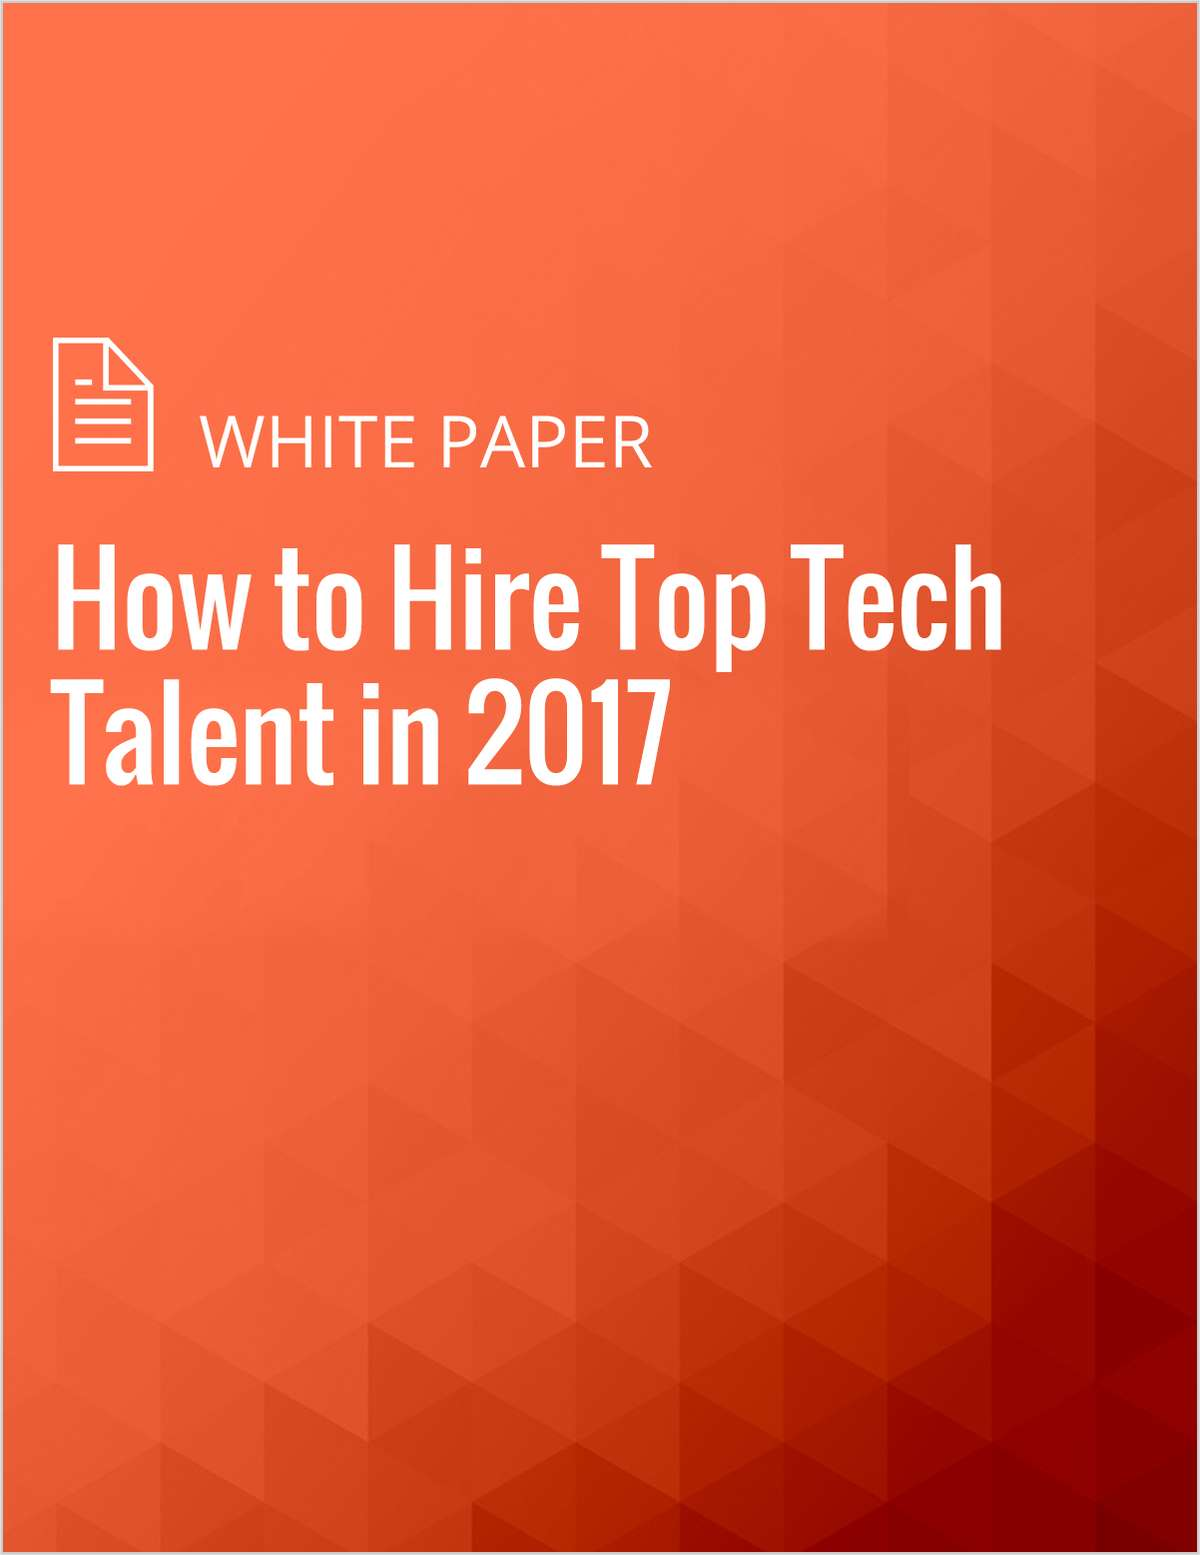 How to Hire Top Tech Talent in 2017